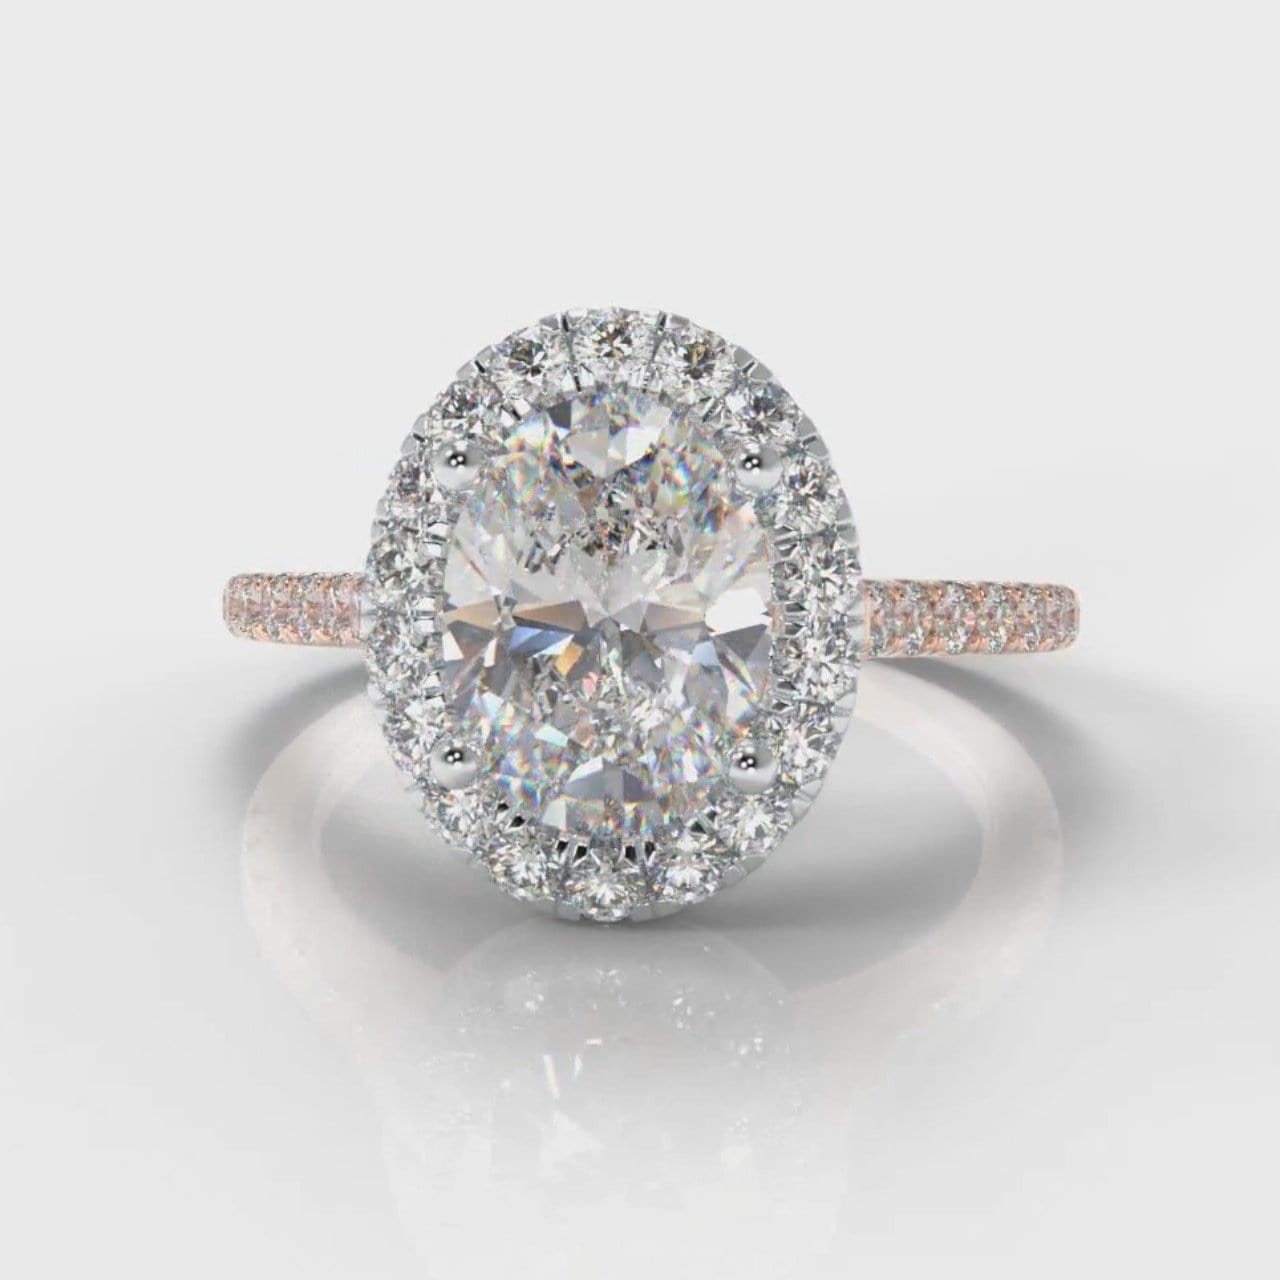 Petite Micropavé Oval Diamond Halo Engagement Ring - Two Tone Rose Gold